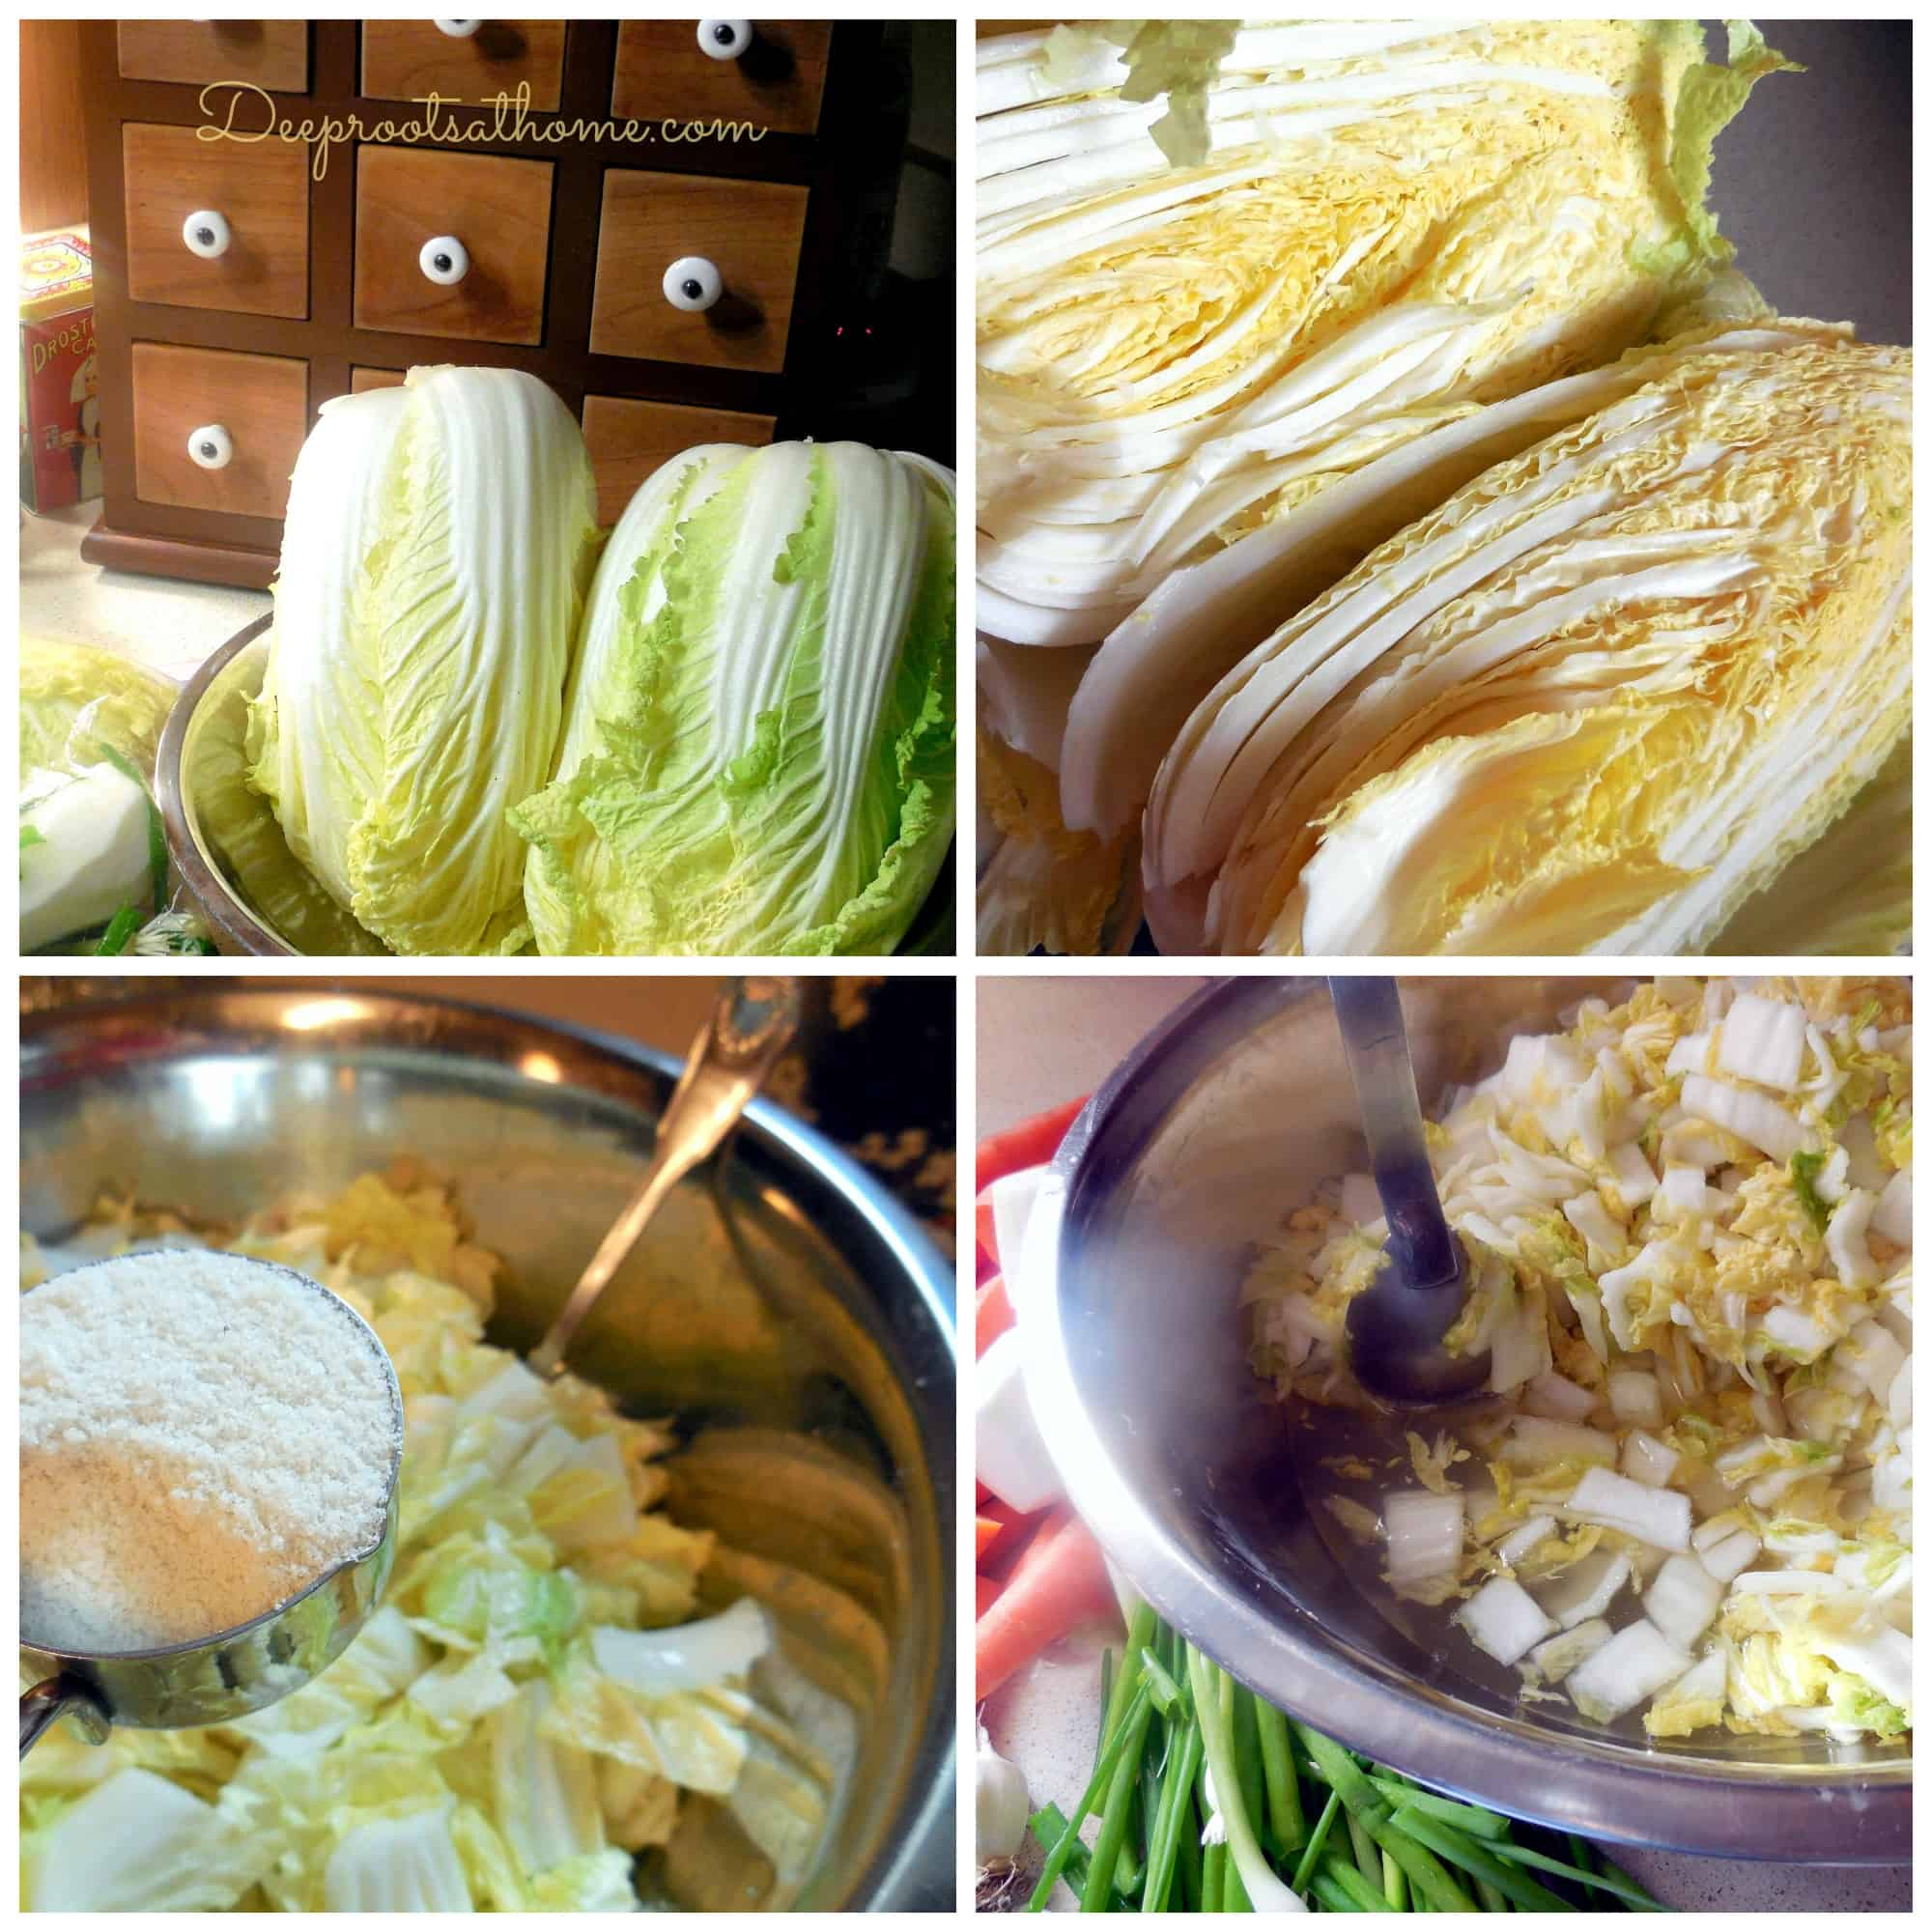 Easy Authentic Basic Fermented Kimchi, vegan, food preservation, lacto-fermentation, healthy gut, good bacteria, kimchi, healing the gut, anticancer, probiotic, Bubbies pickles, sauerkraut, brine, pickling spices, kahm yeast, slow fermentation, finger foods, old-fashioned, the way grandma used to ferment, healthy living, putting up the harvest, sea salt preservation, napa cabbage, Celtic sea salt,